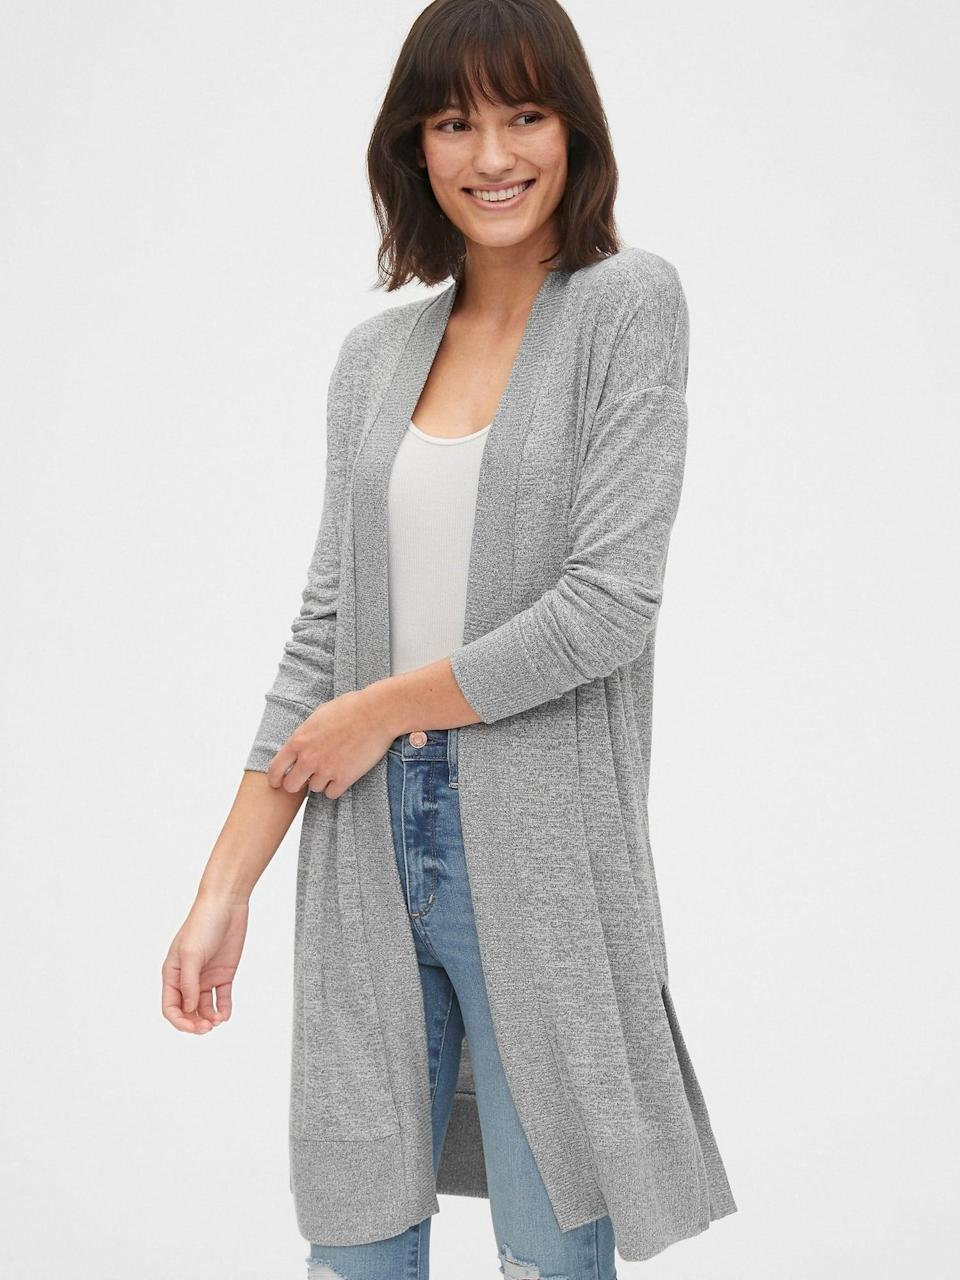 <p>A chicer alternative to a robe, but just as cozy this <span>Gap Softspun Cardigan</span> ($53, originally $60) can be thrown on over your favorite tank top with a pair of jeans.</p>